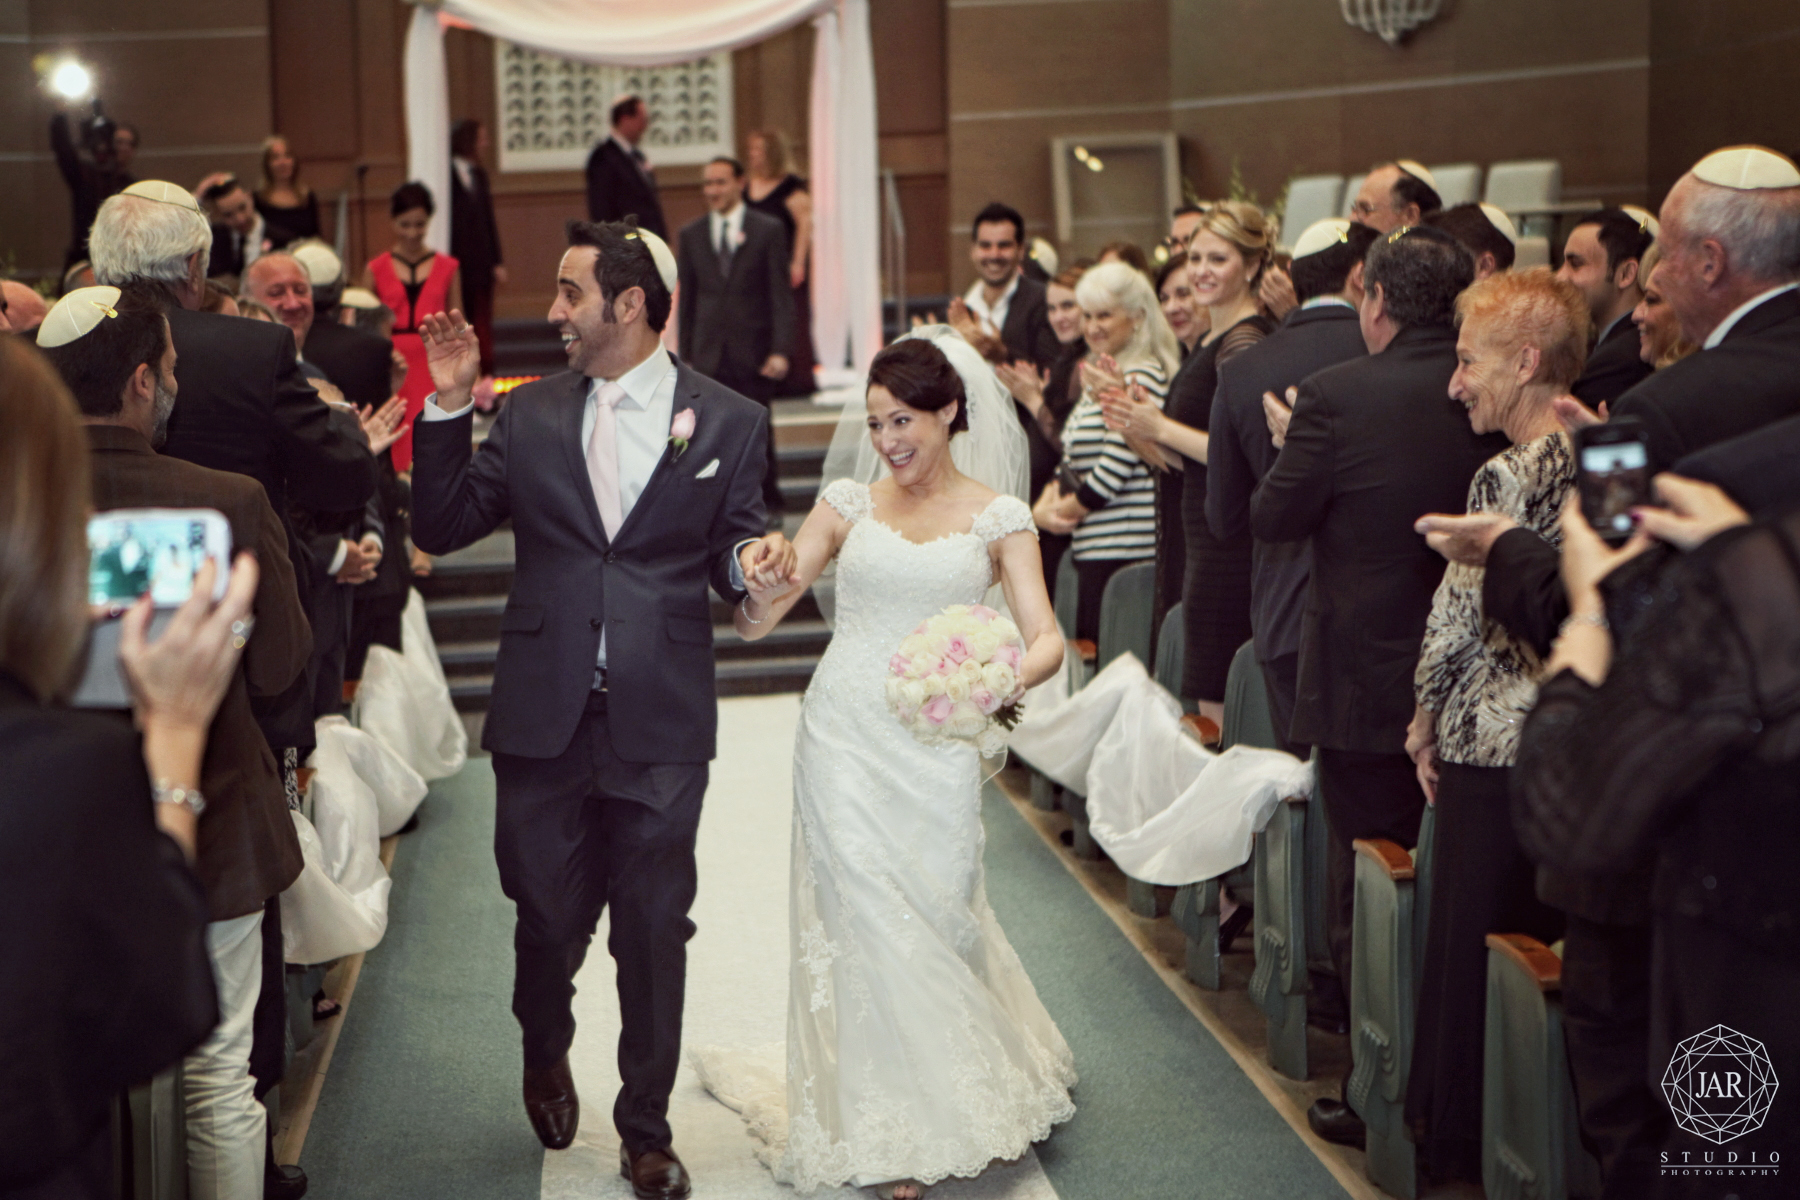 27-jewish-wedding-orlando-fl-jarstudio-photography.JPG